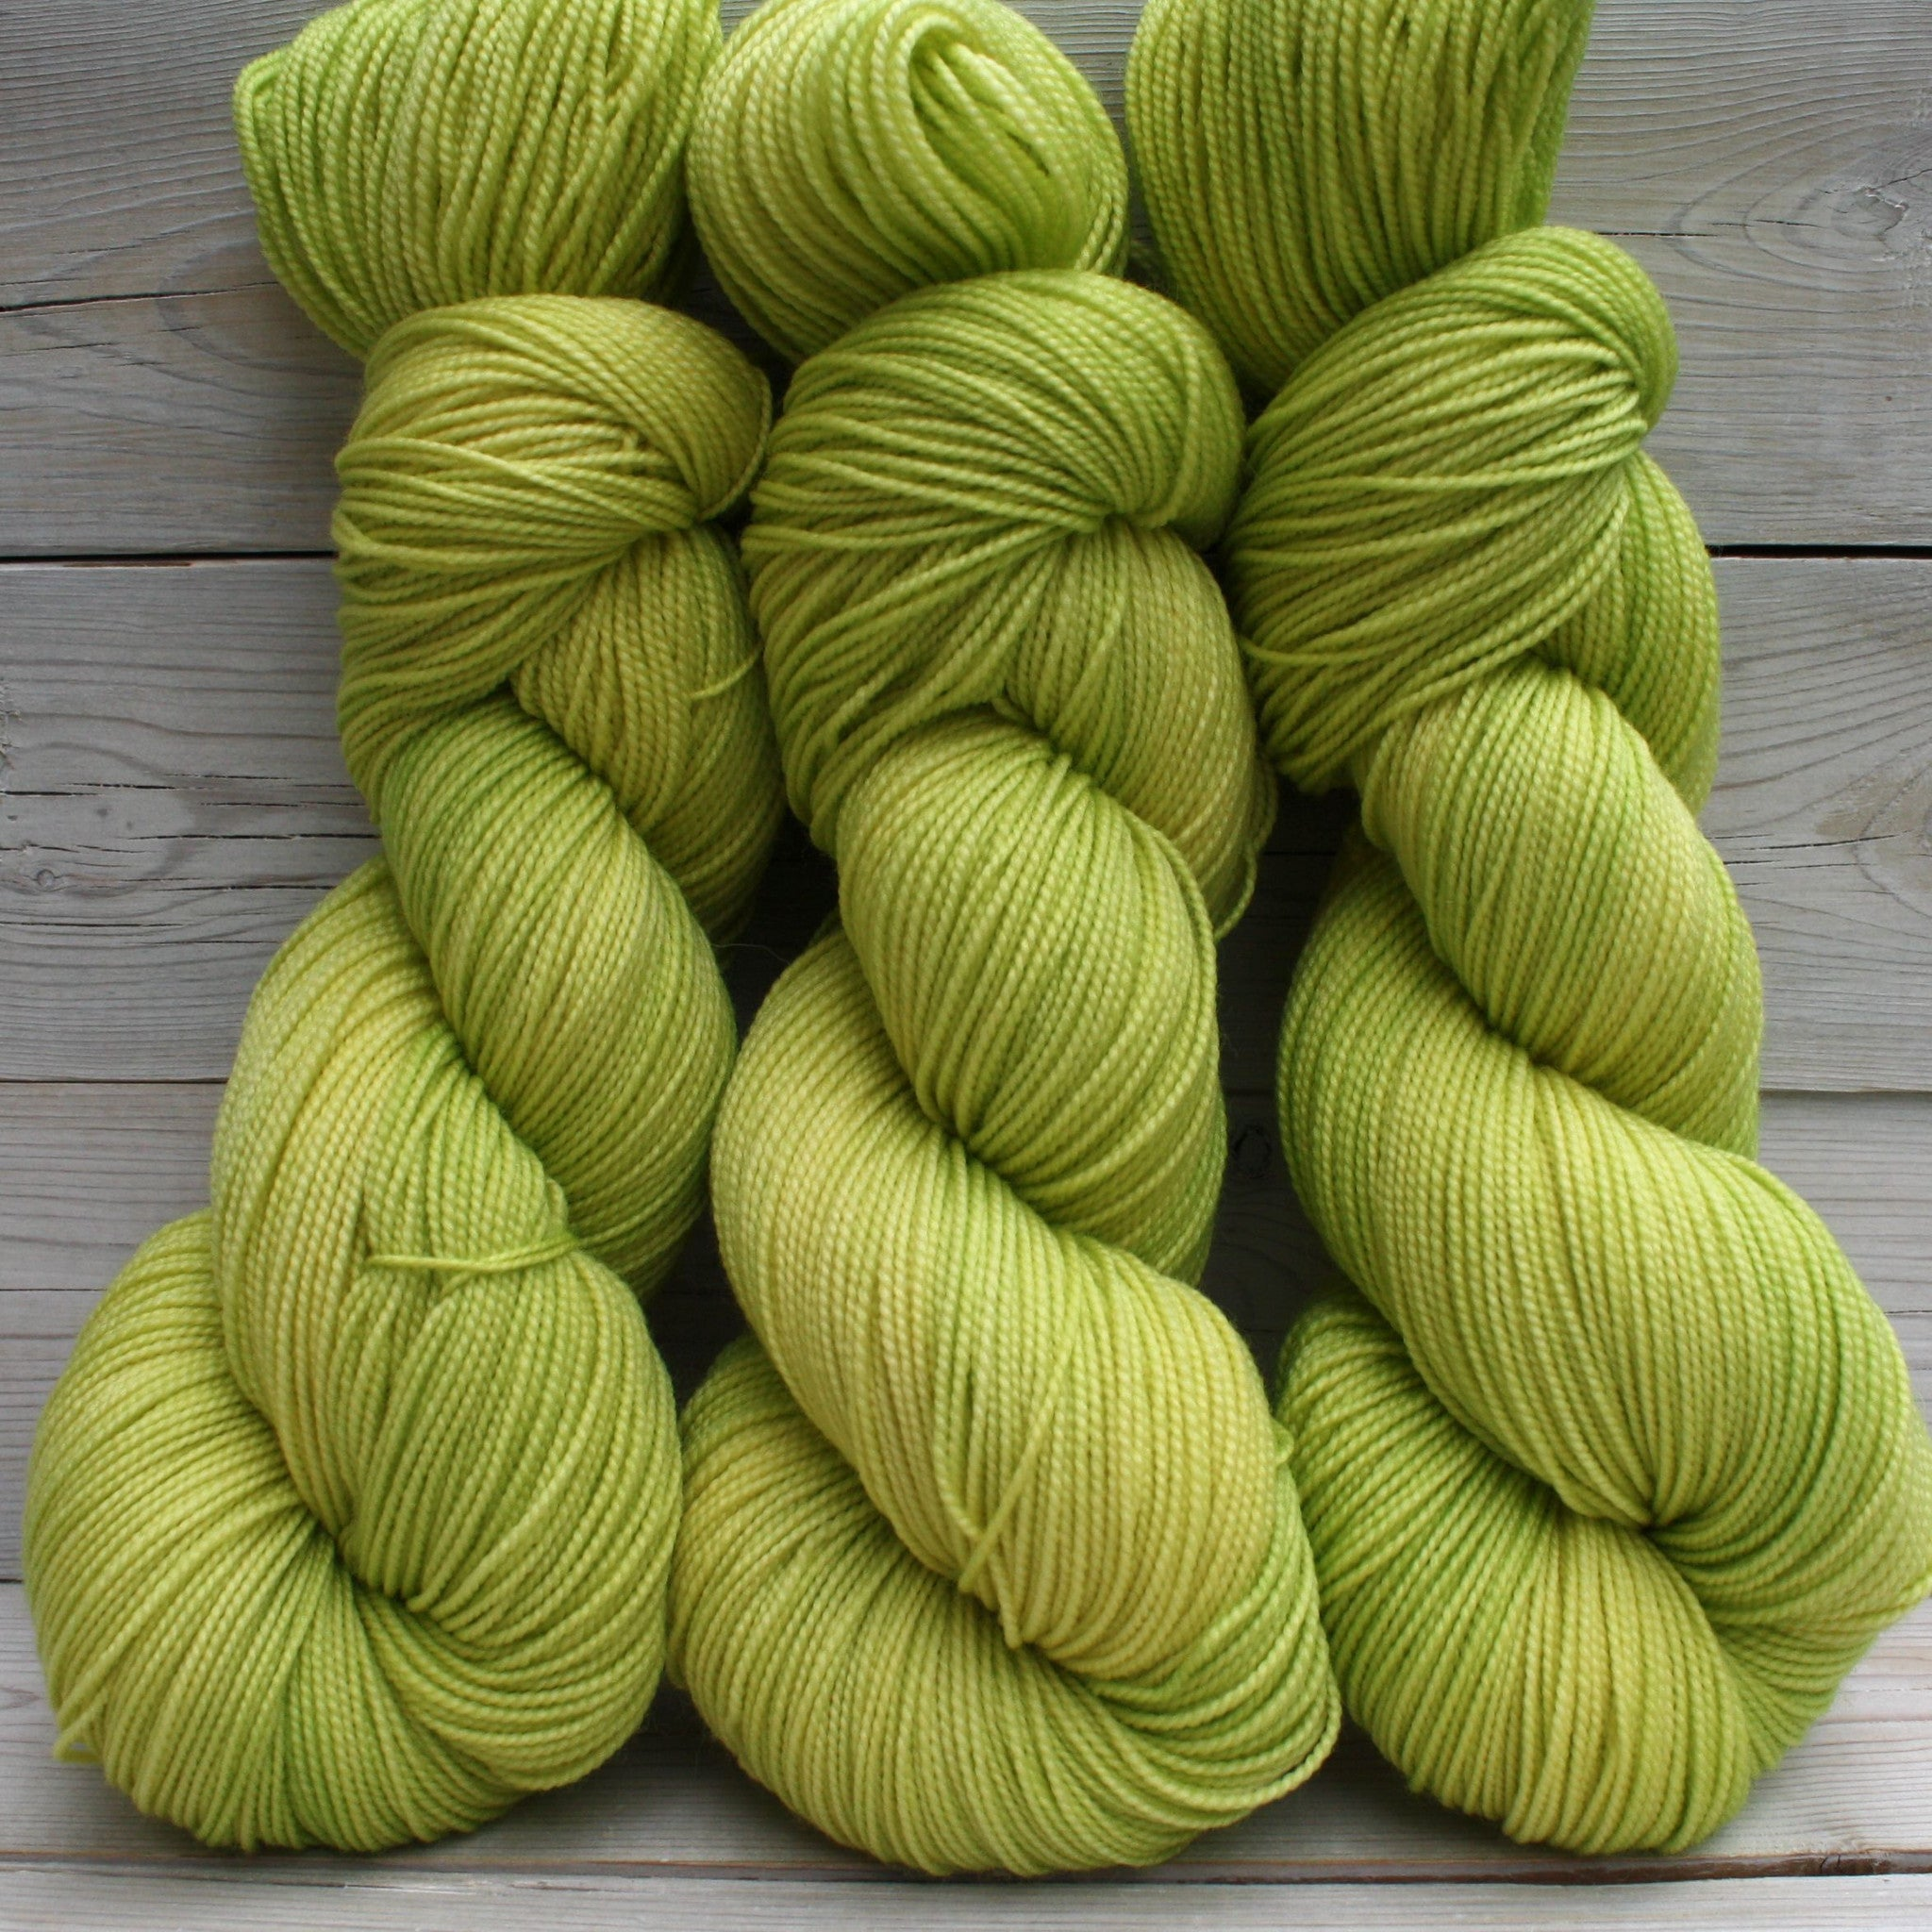 Colorway: Lemon Lime | Dyed to Order Yarn